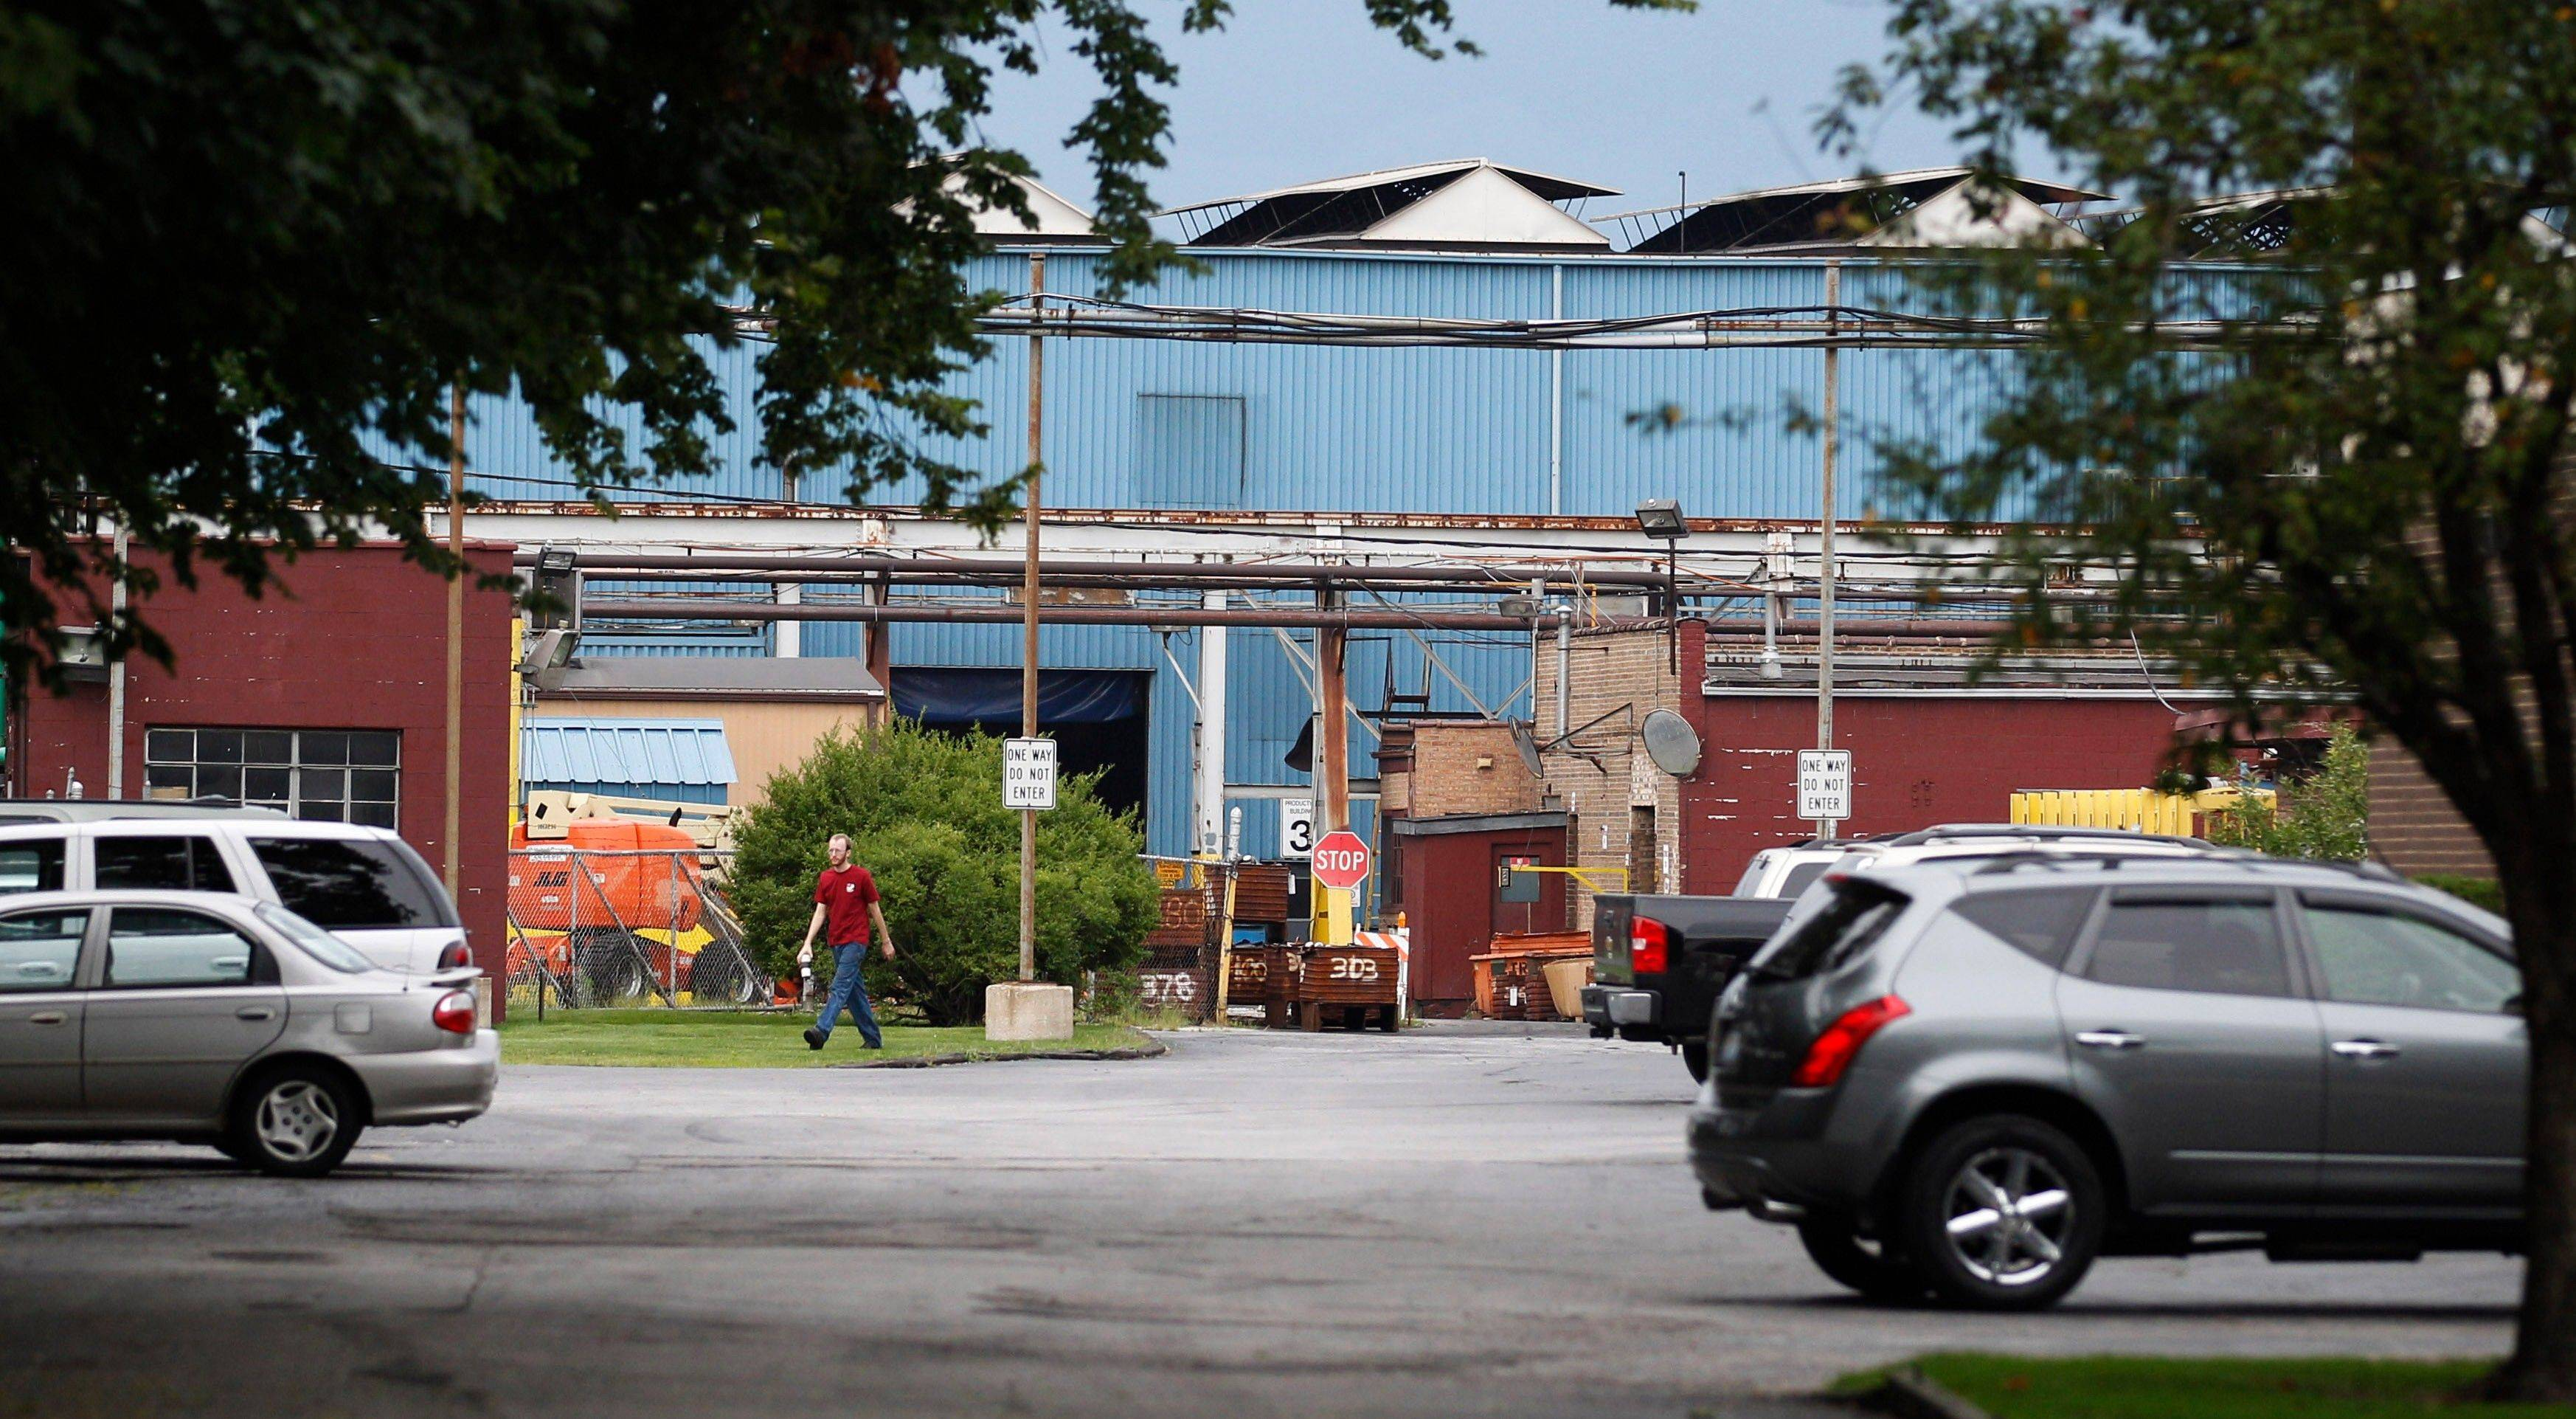 A man leaves the Modern Drop Forge Co. in Blue Island on Tuesday. The company announced plans to set up forging production lines and offices in an existing Merrillville, Ind., facility where it expects to hire perhaps 240 workers in the next few years.